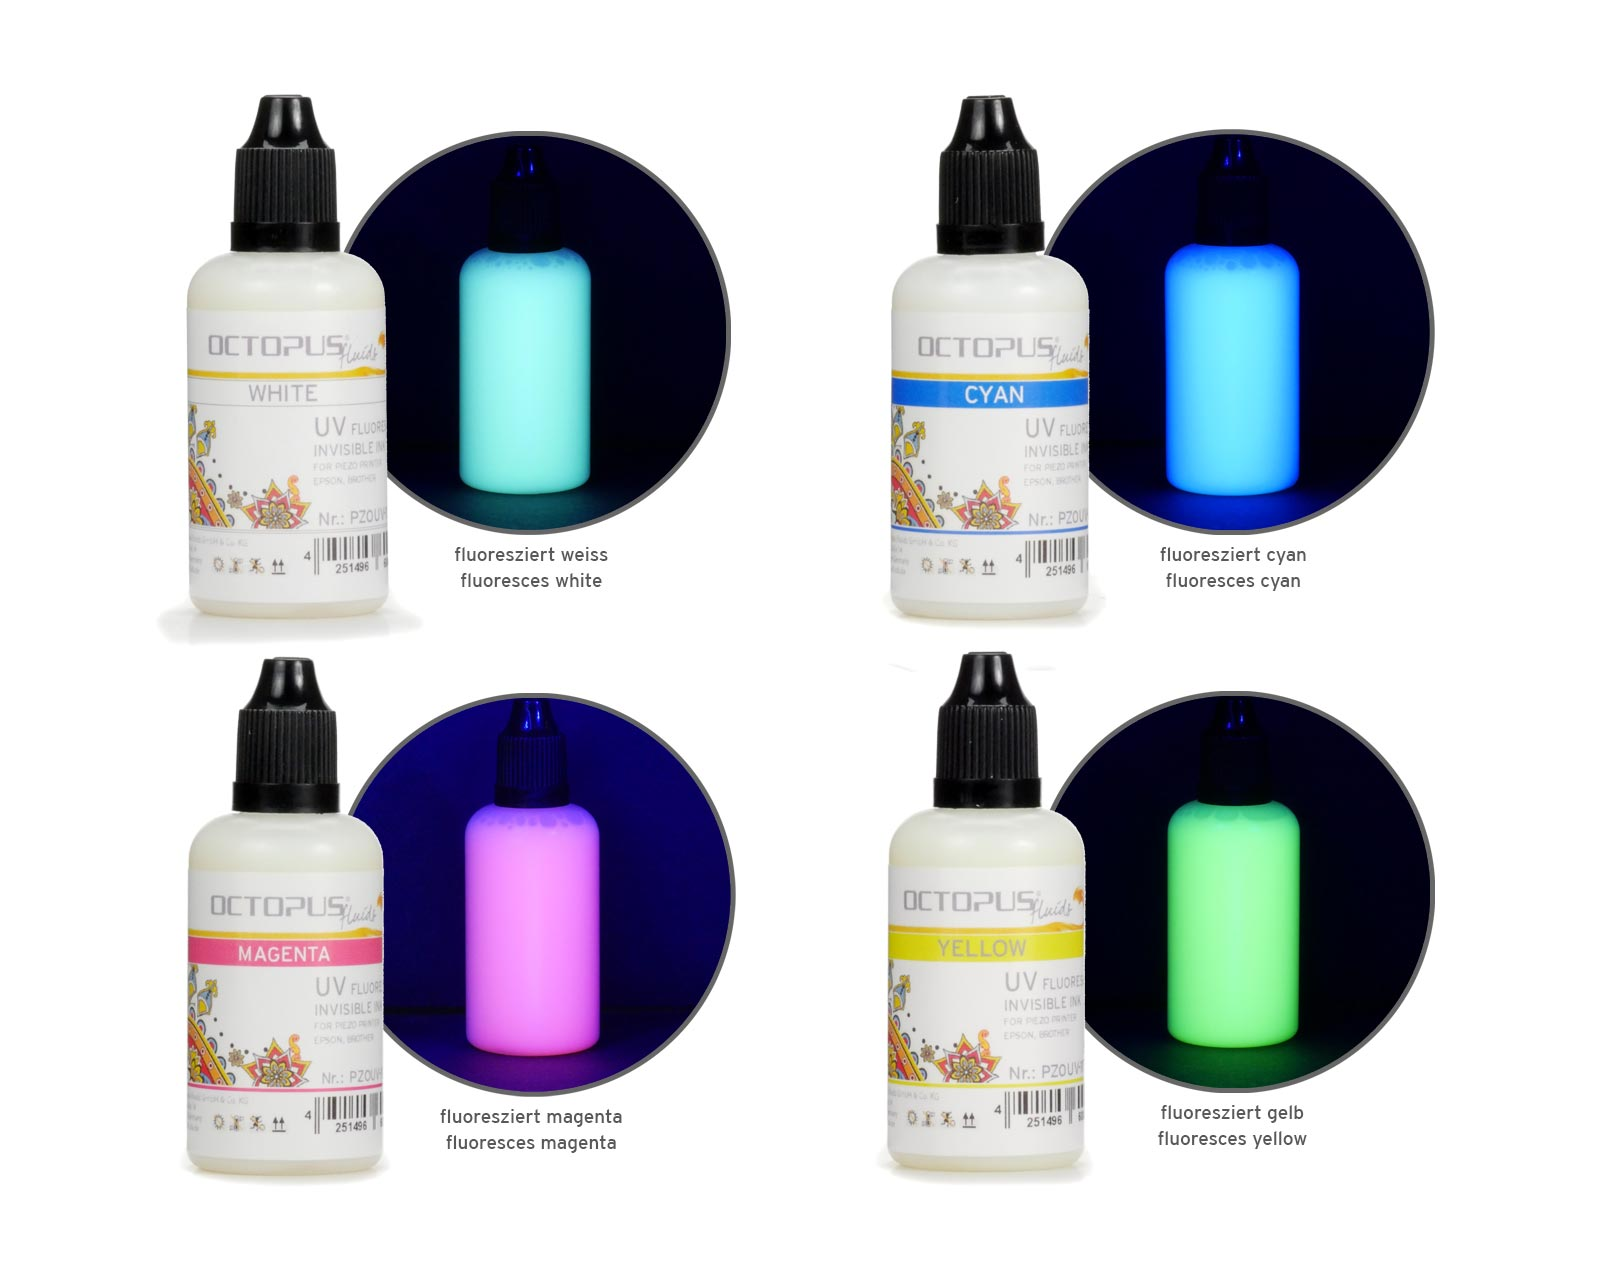 4x 50ml Inchiostro fluorescente UV invisibile per Epson e Brother, bianco, ciano, magenta, giallo